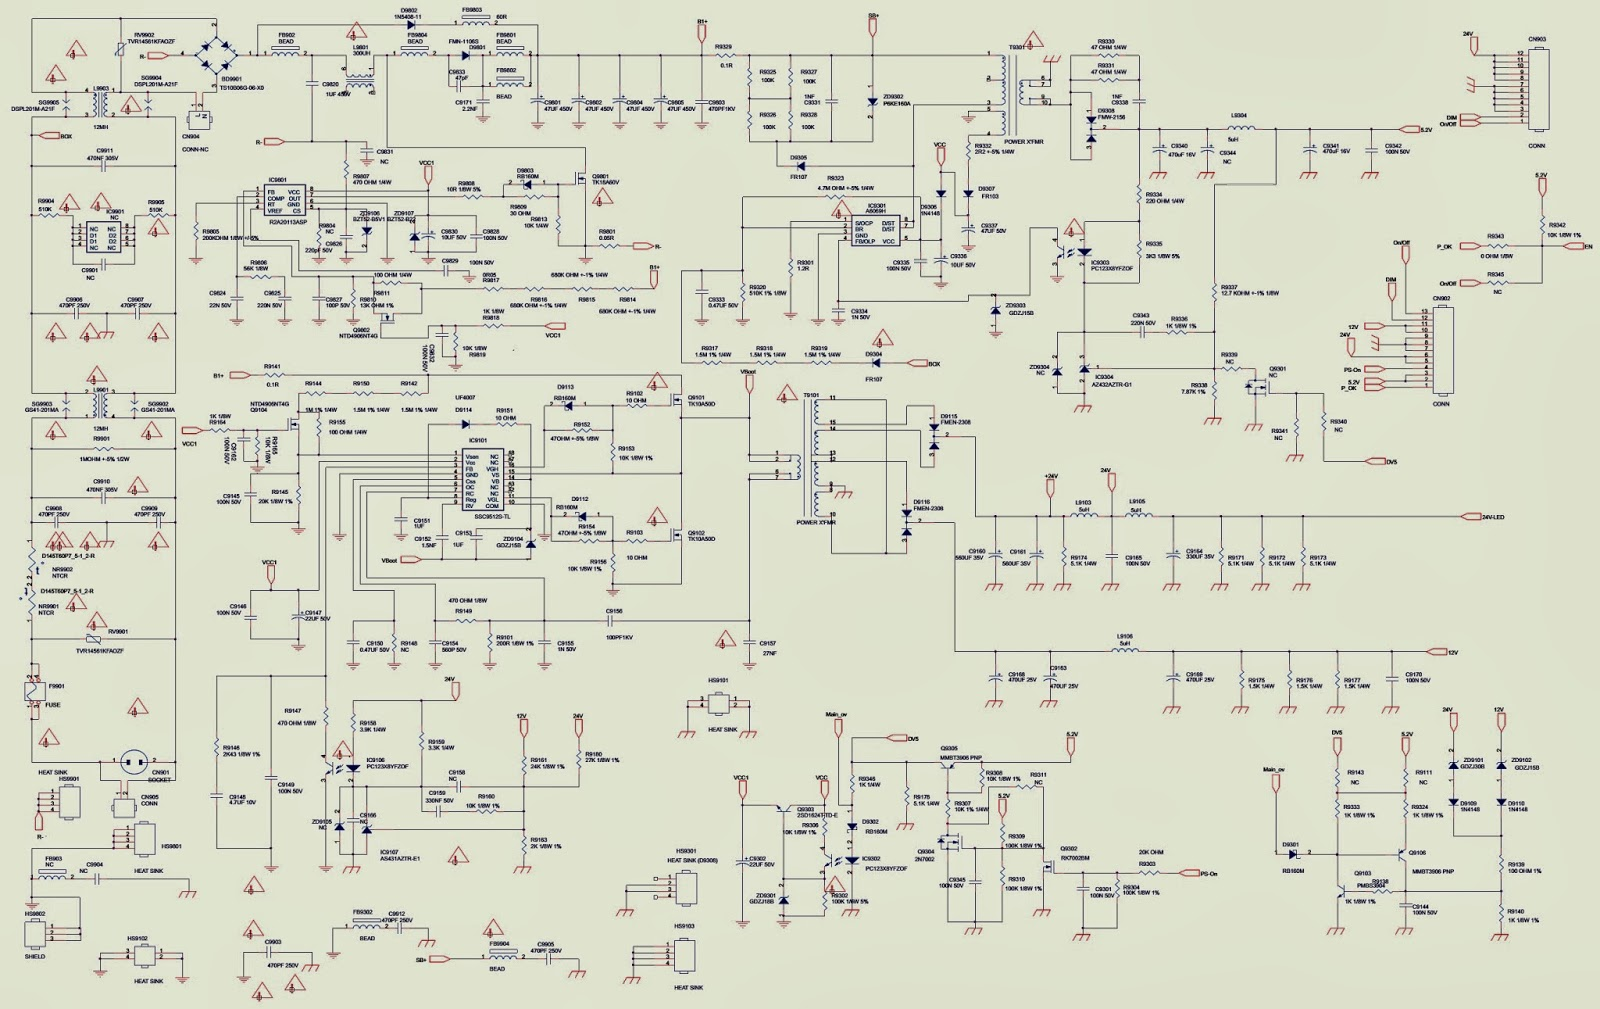 Philips Tv Wiring Diagram Solution Of Your Guide L04a Chassis Power Supply Smps Scan Out Schematic 32pfl3507 42pfl3507 Rh Electronicshelponline Blogspot Com Connection Diagrams And